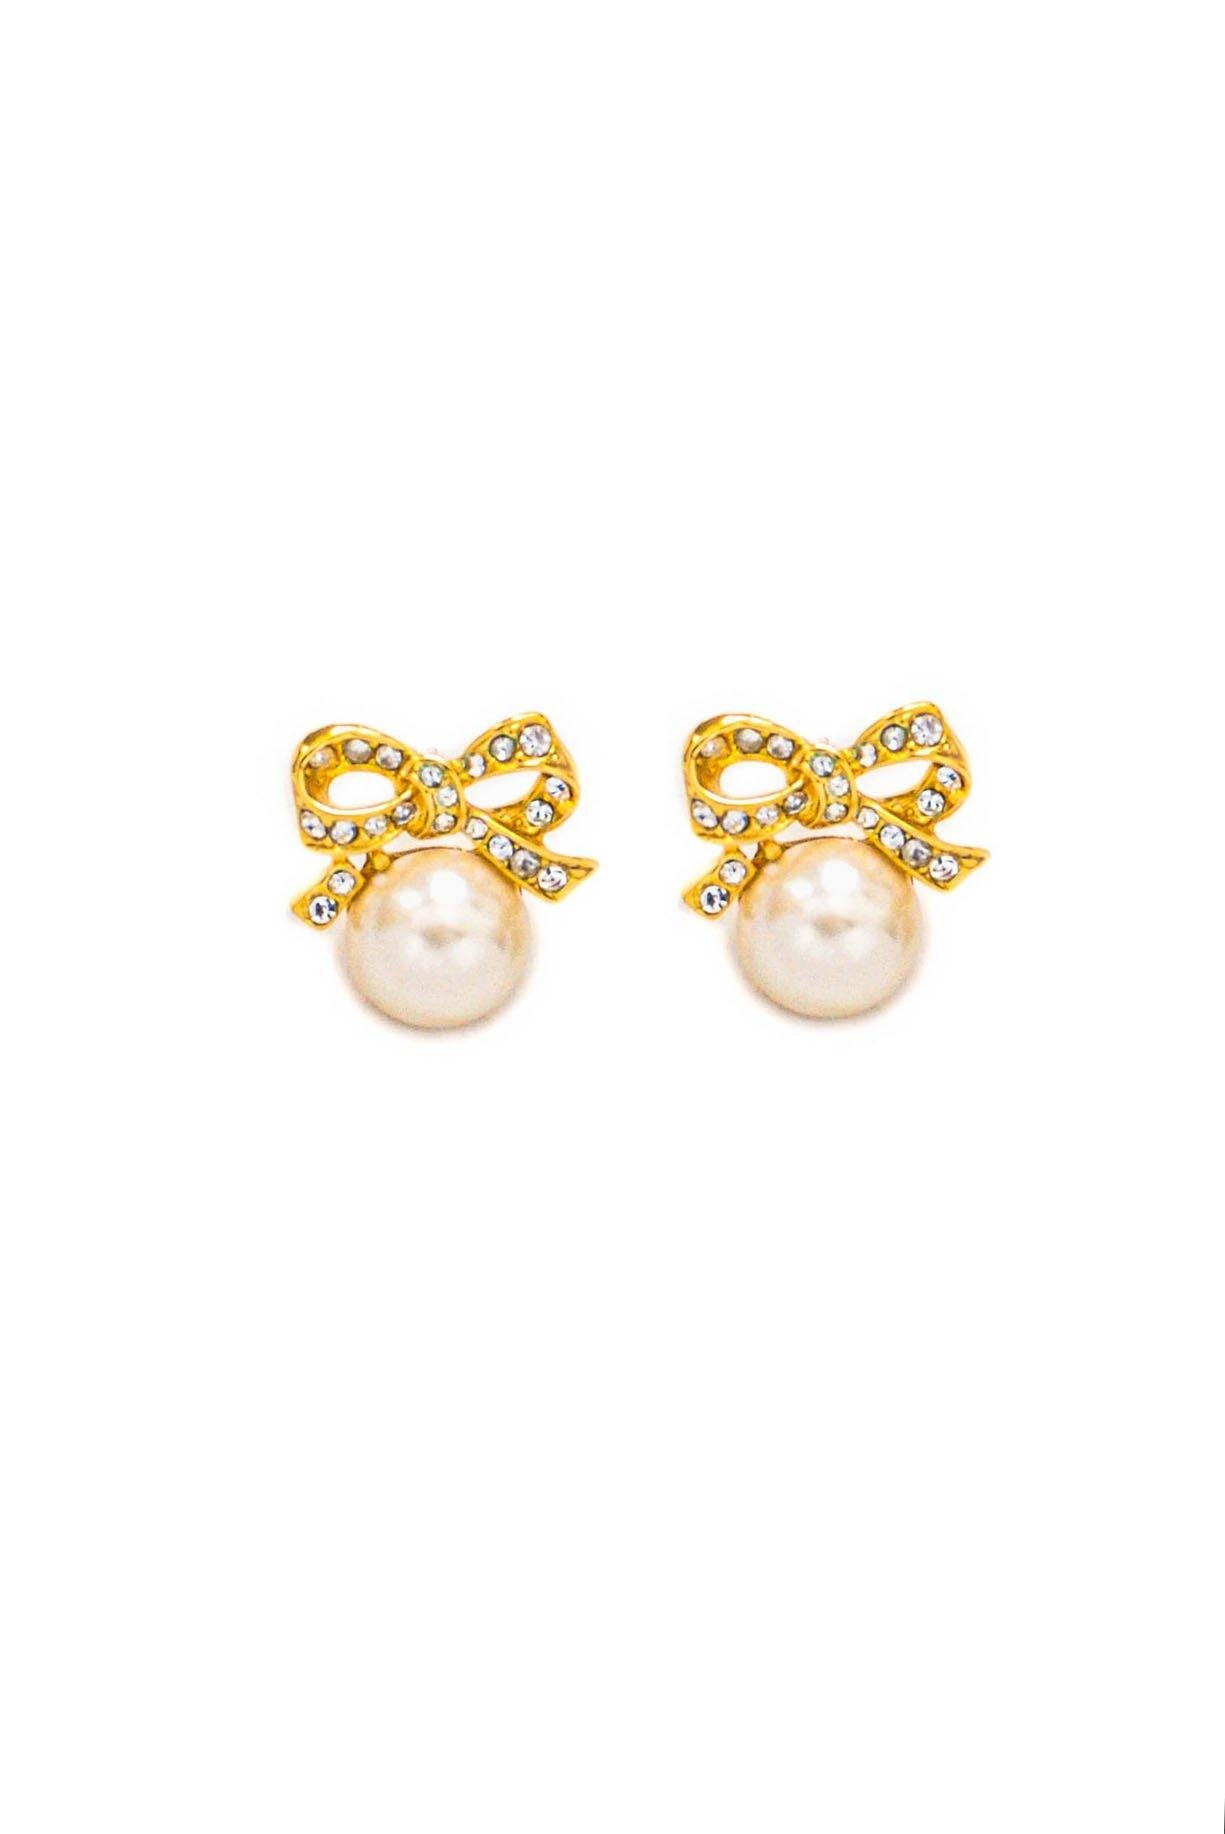 Vintage Rhinestone Bow Pearl Pierced Earrings from Sweet and Spark